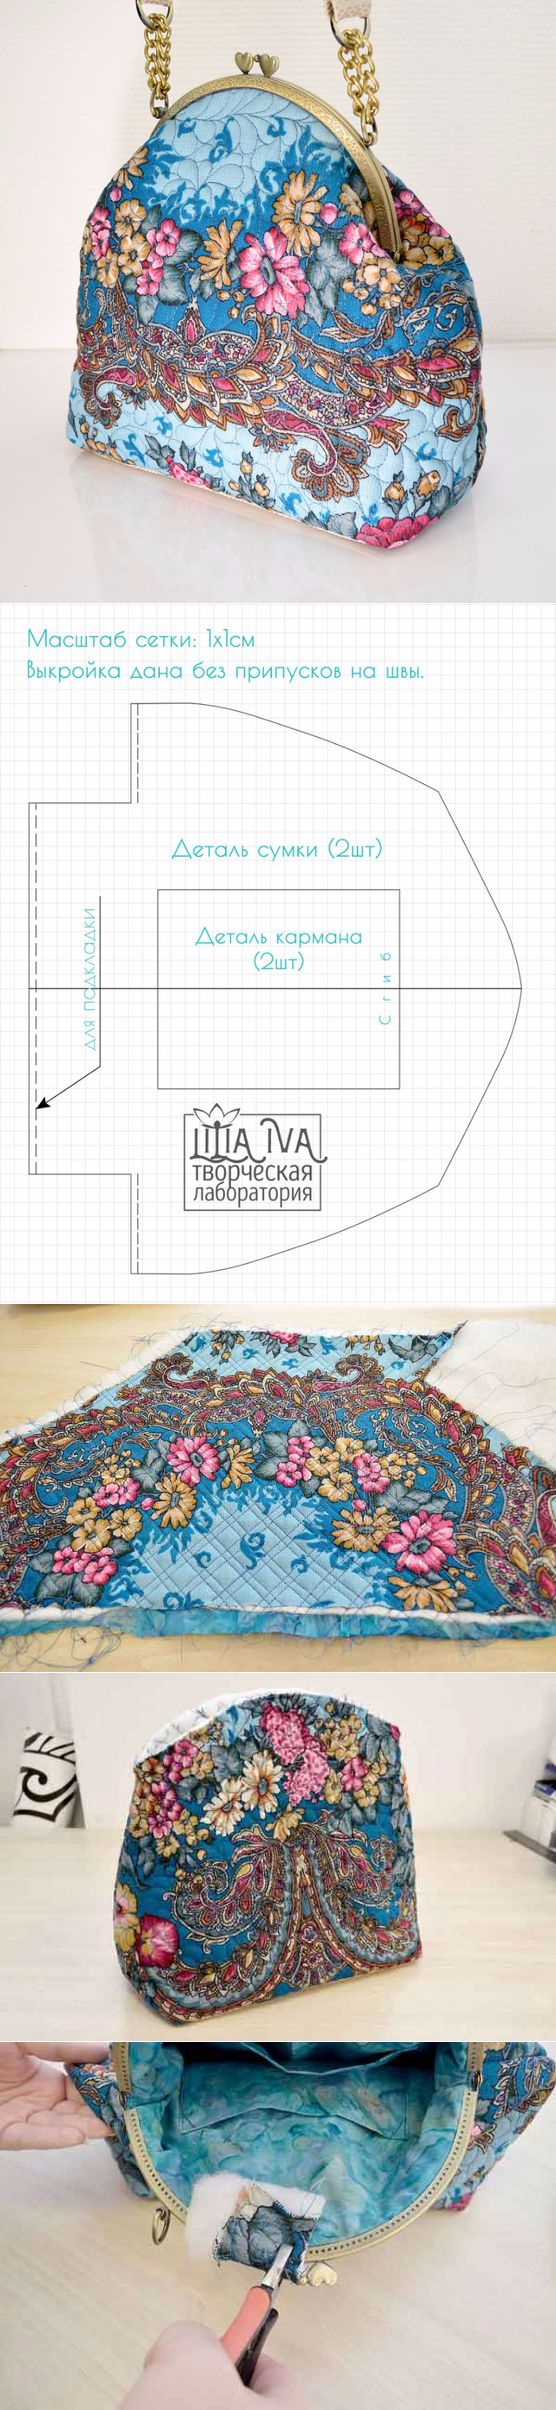 Sew the bag in the Russian style